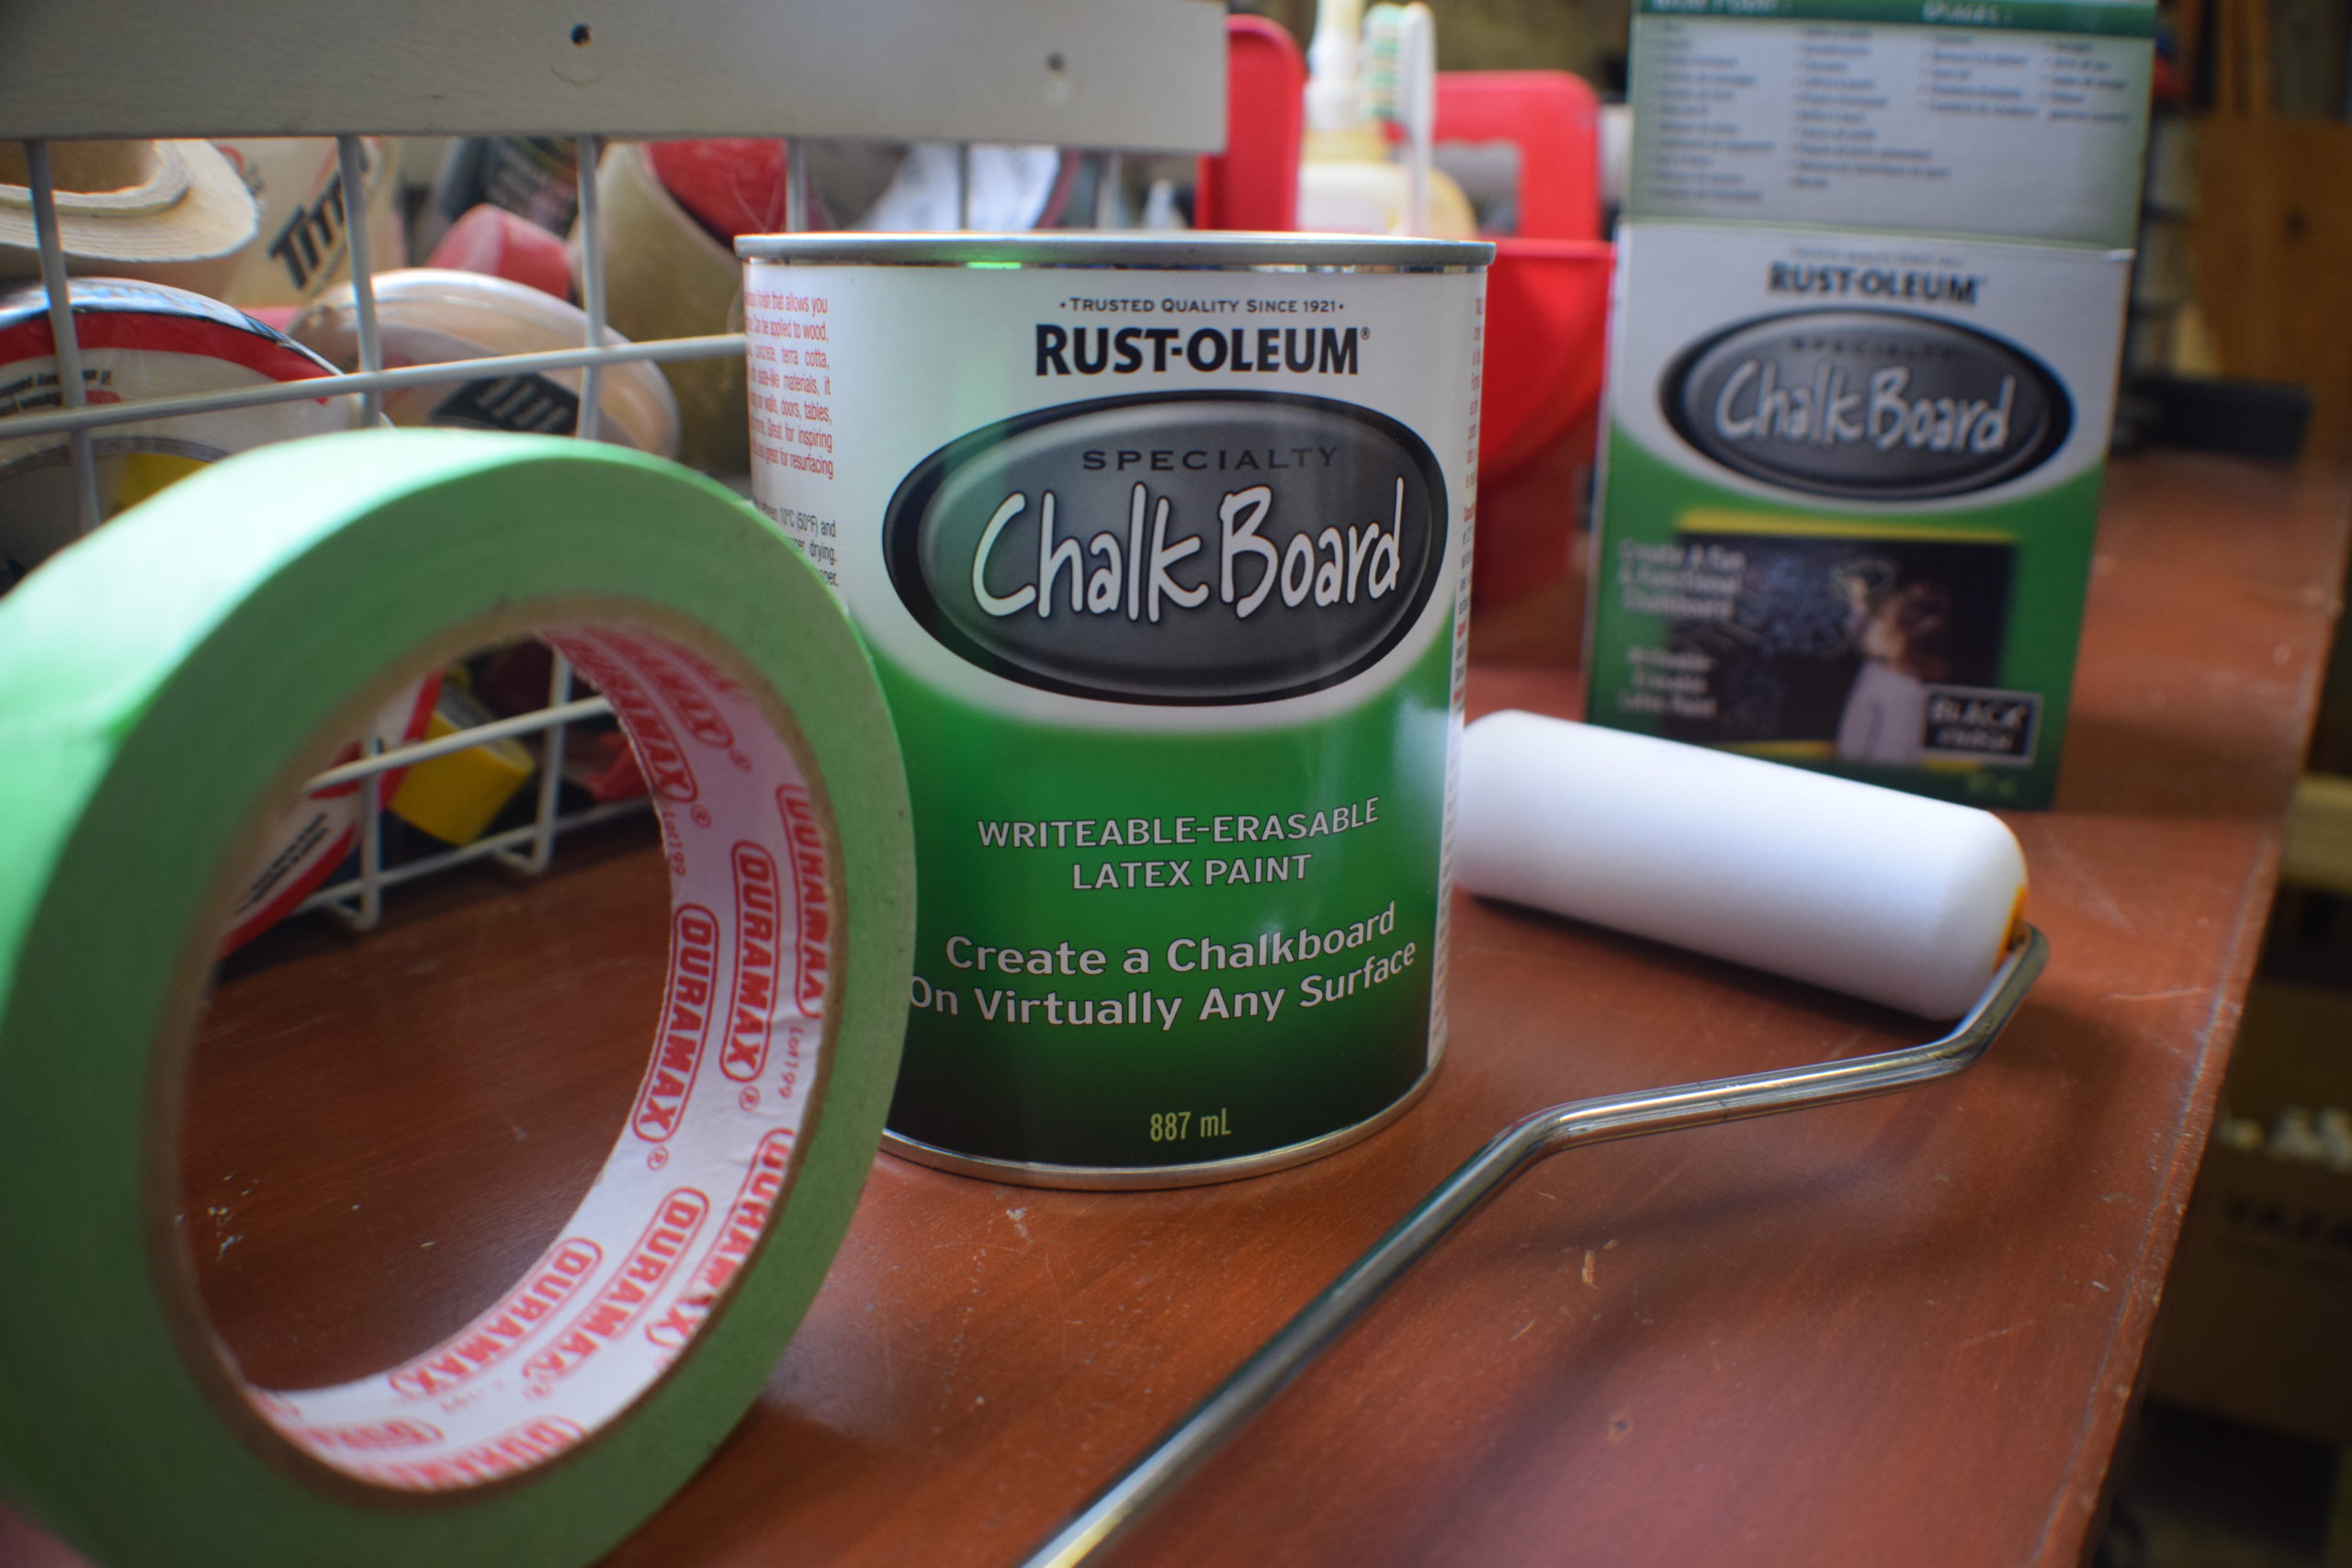 Supplies for painting a chalkboard wall on a tool bench